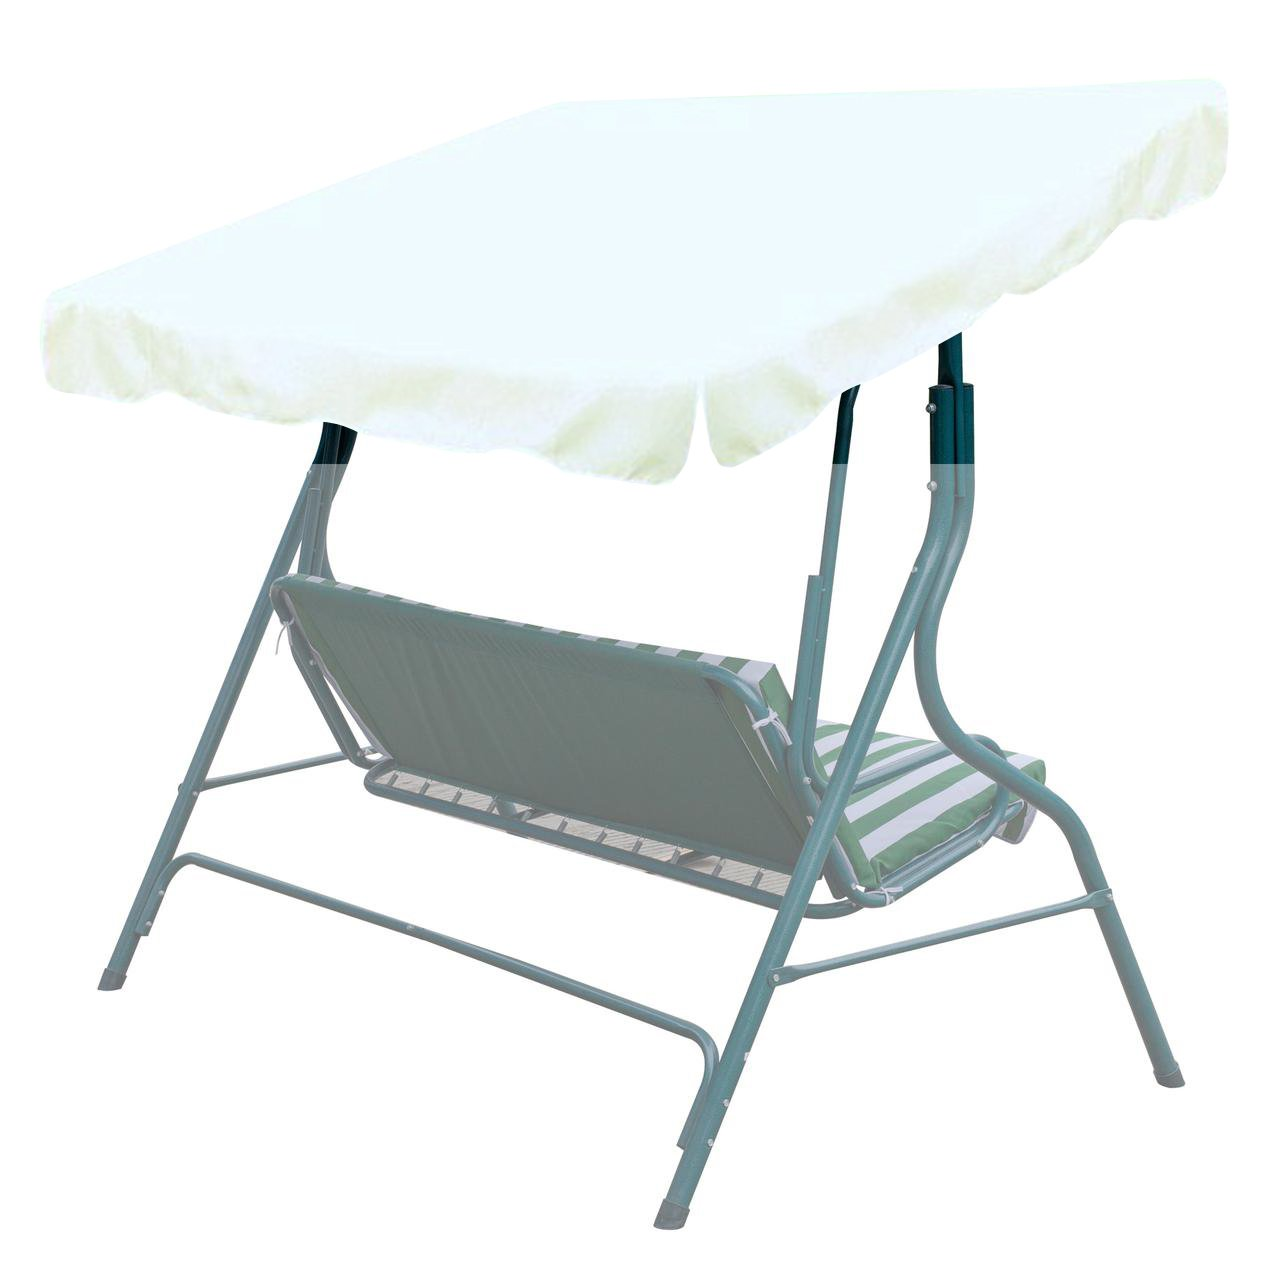 BenefitUSA Outdoor Patio Swing Canopy Replacement Porch Top Cover for Seat Furniture (73''x52'', Ecru)